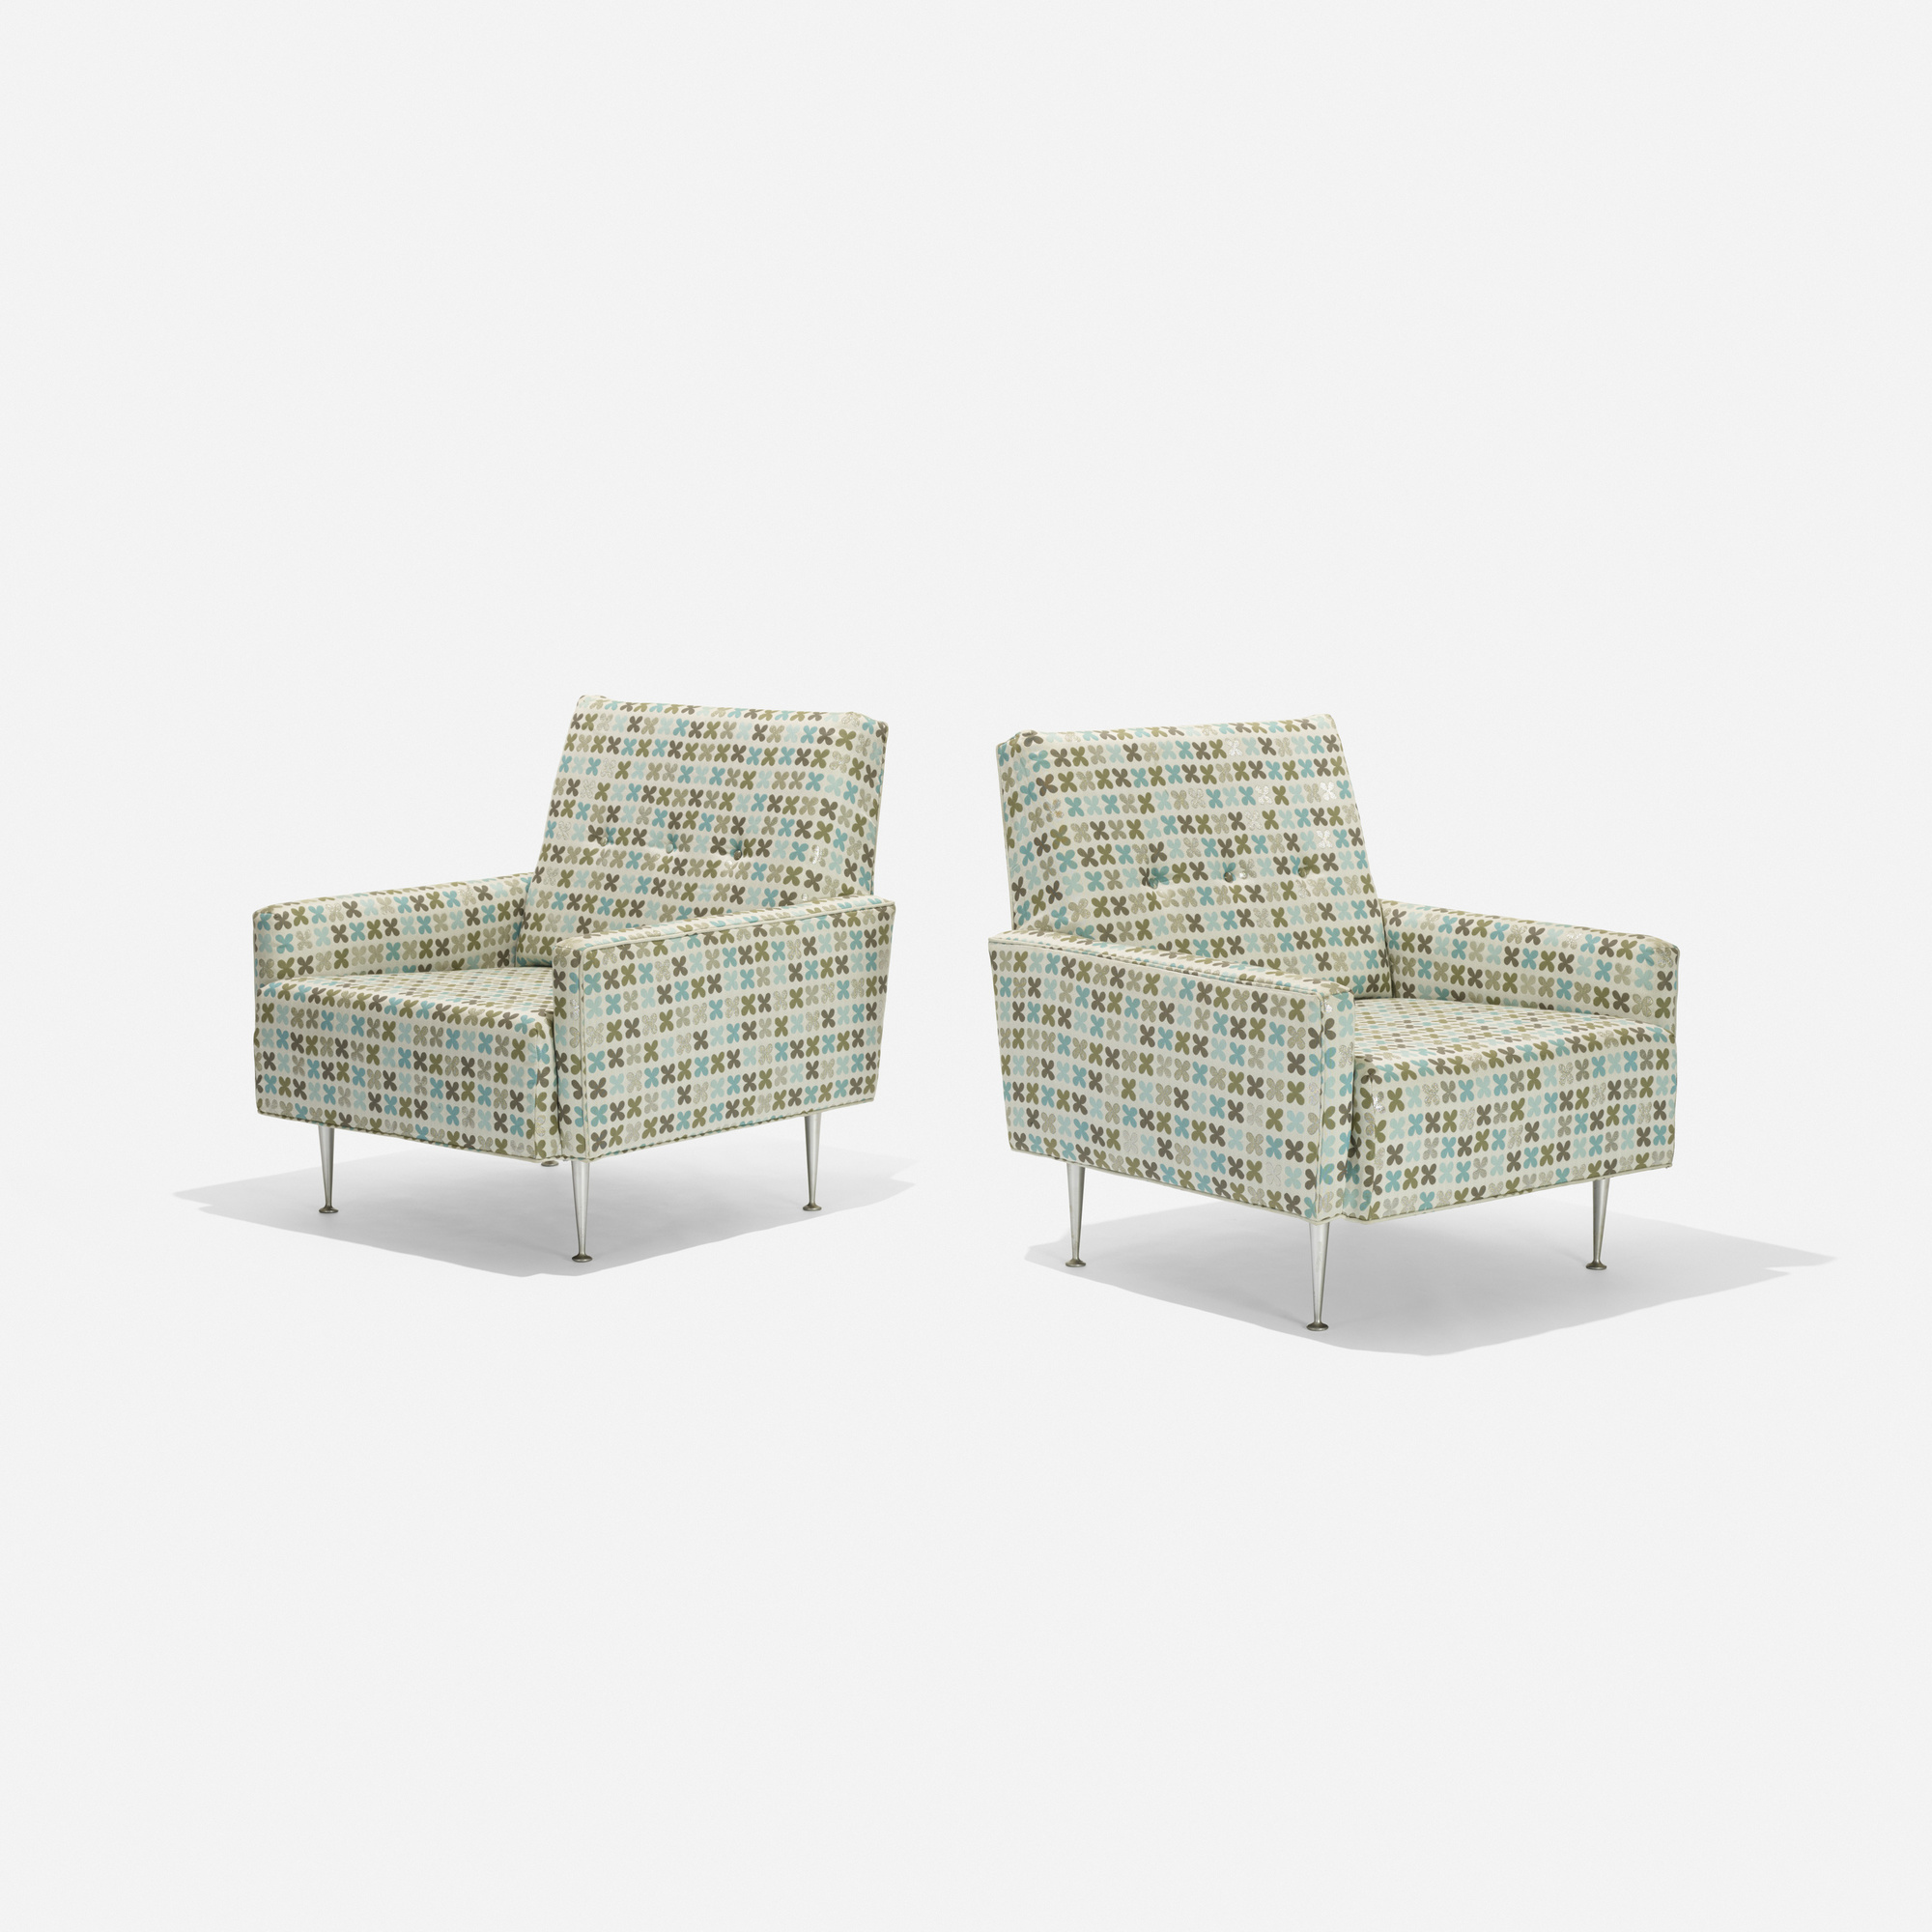 106: George Nelson & Associates / lounge chairs model 5484, pair (1 of 2)